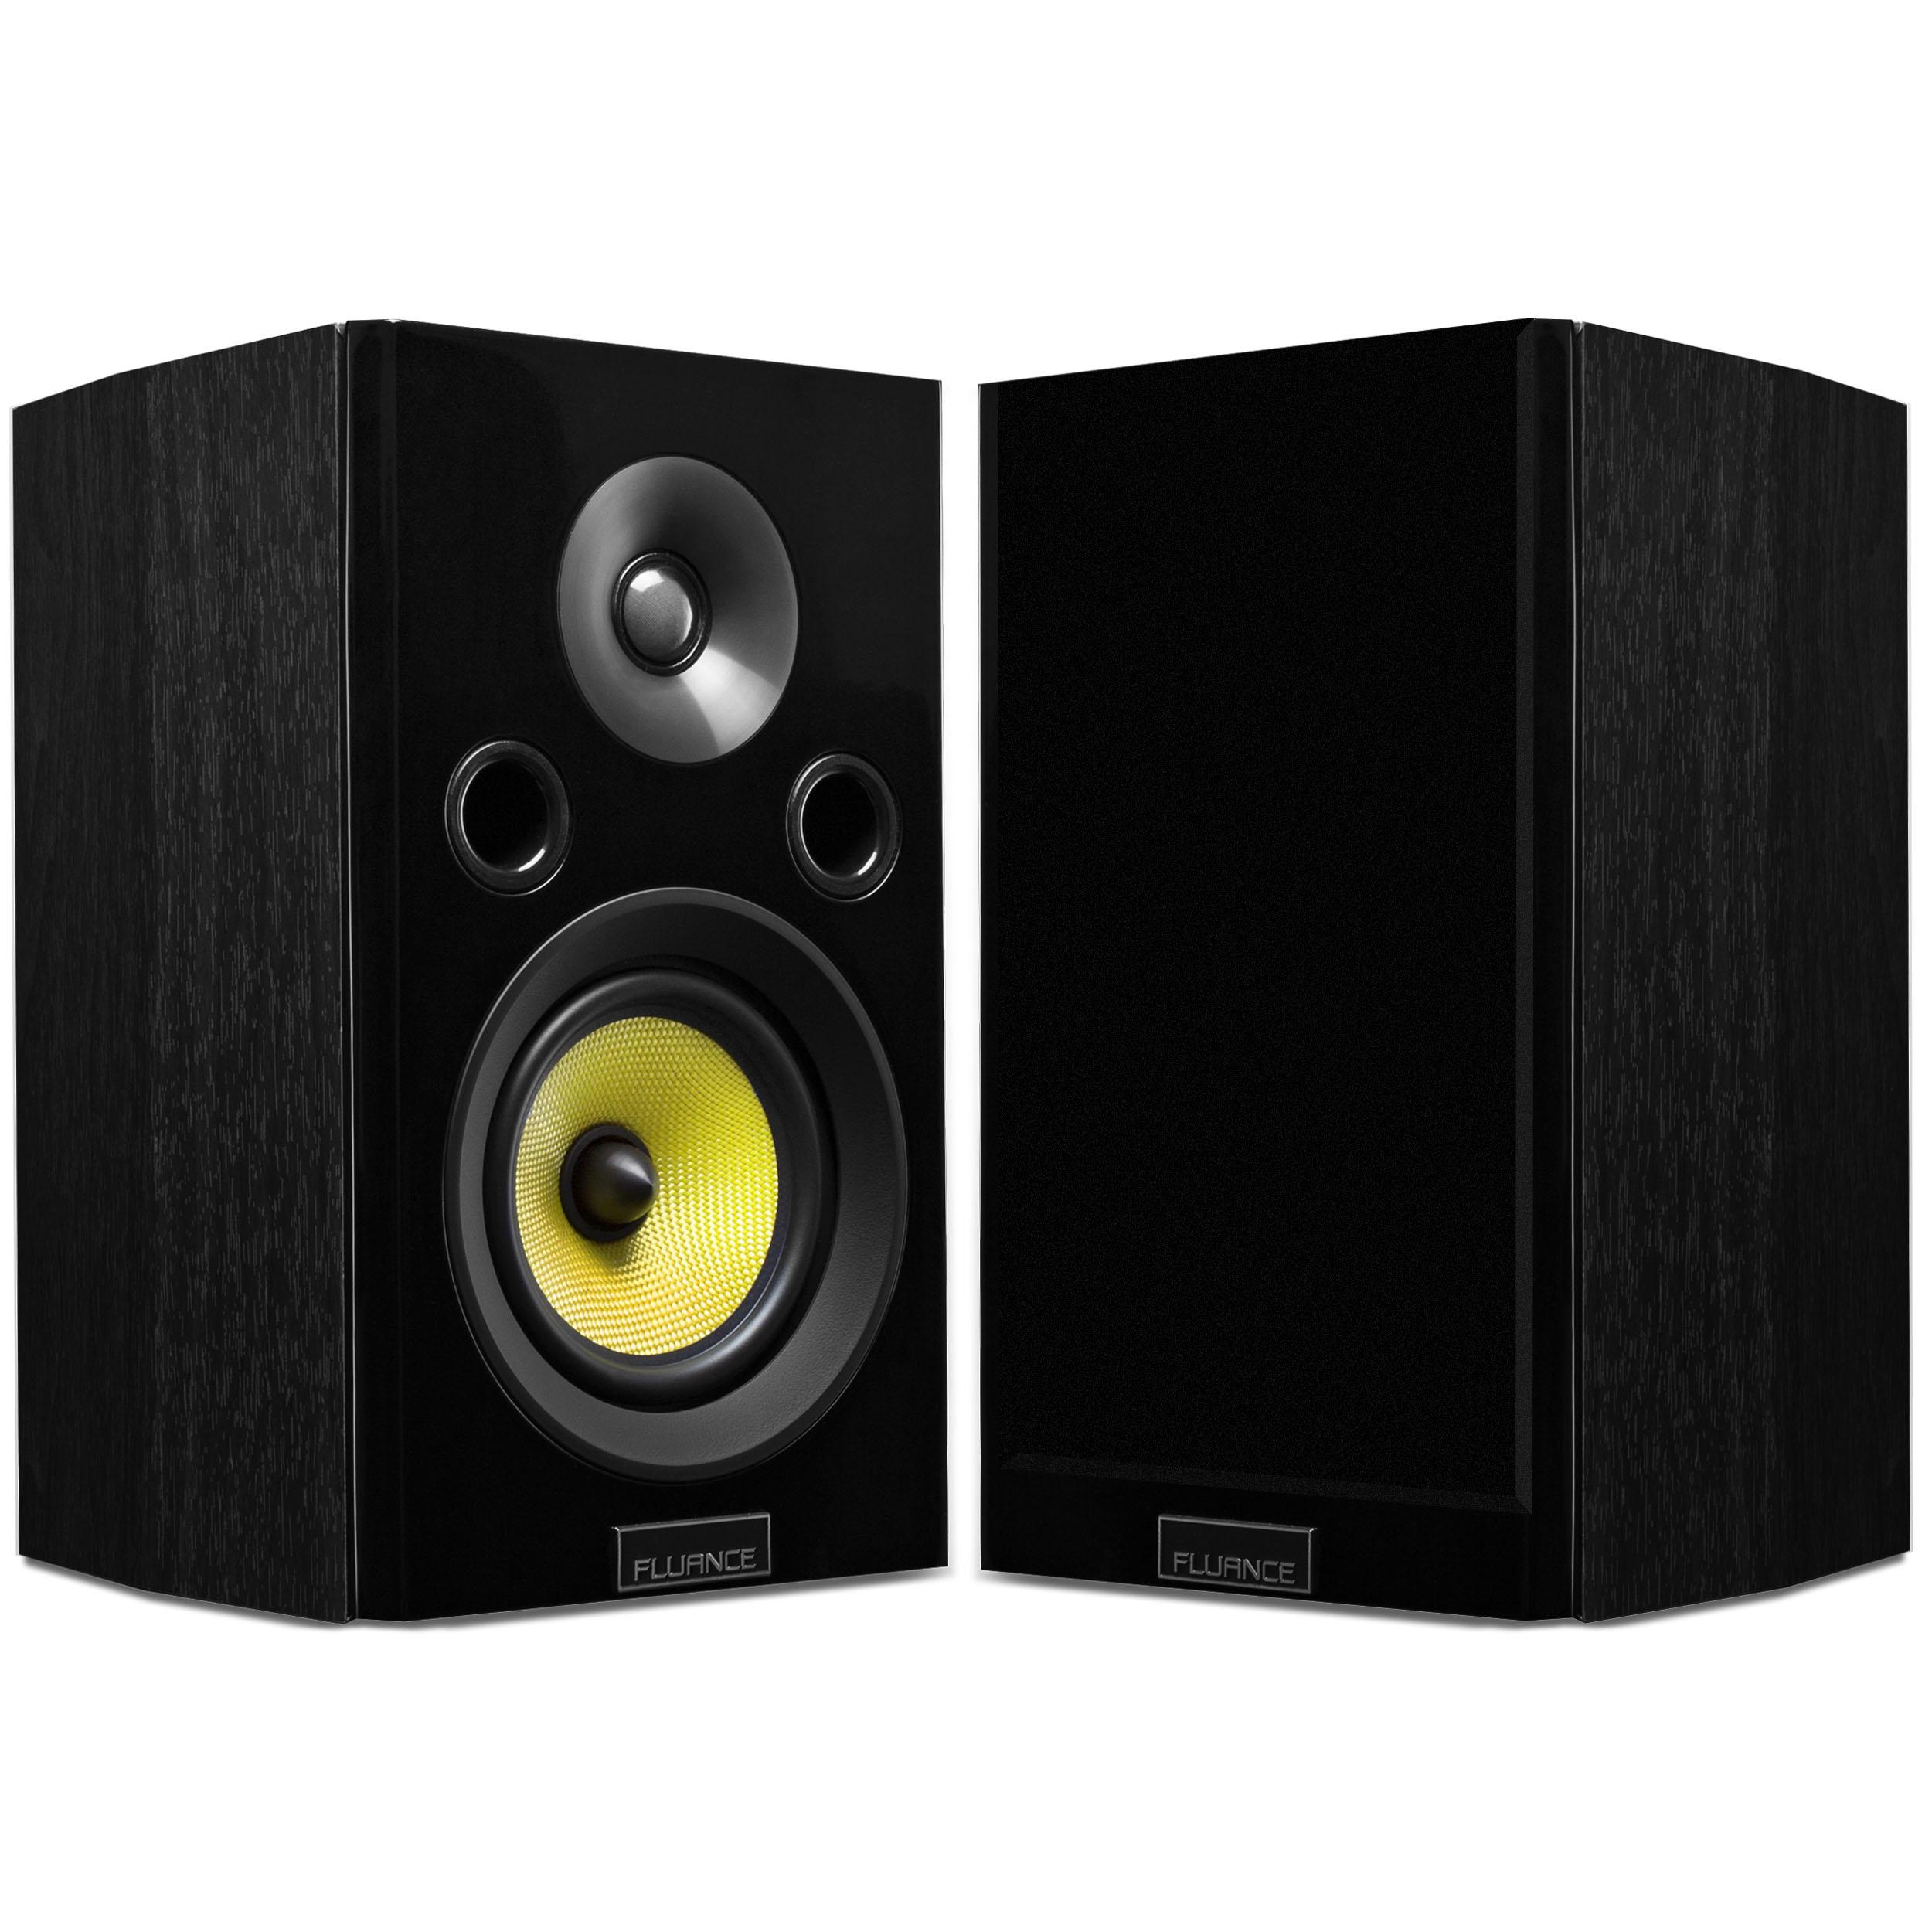 Fluance Signature Series HiFi Two-way Bookshelf Surround Sound Speakers for Home Theater and Music Systems... by Fluance